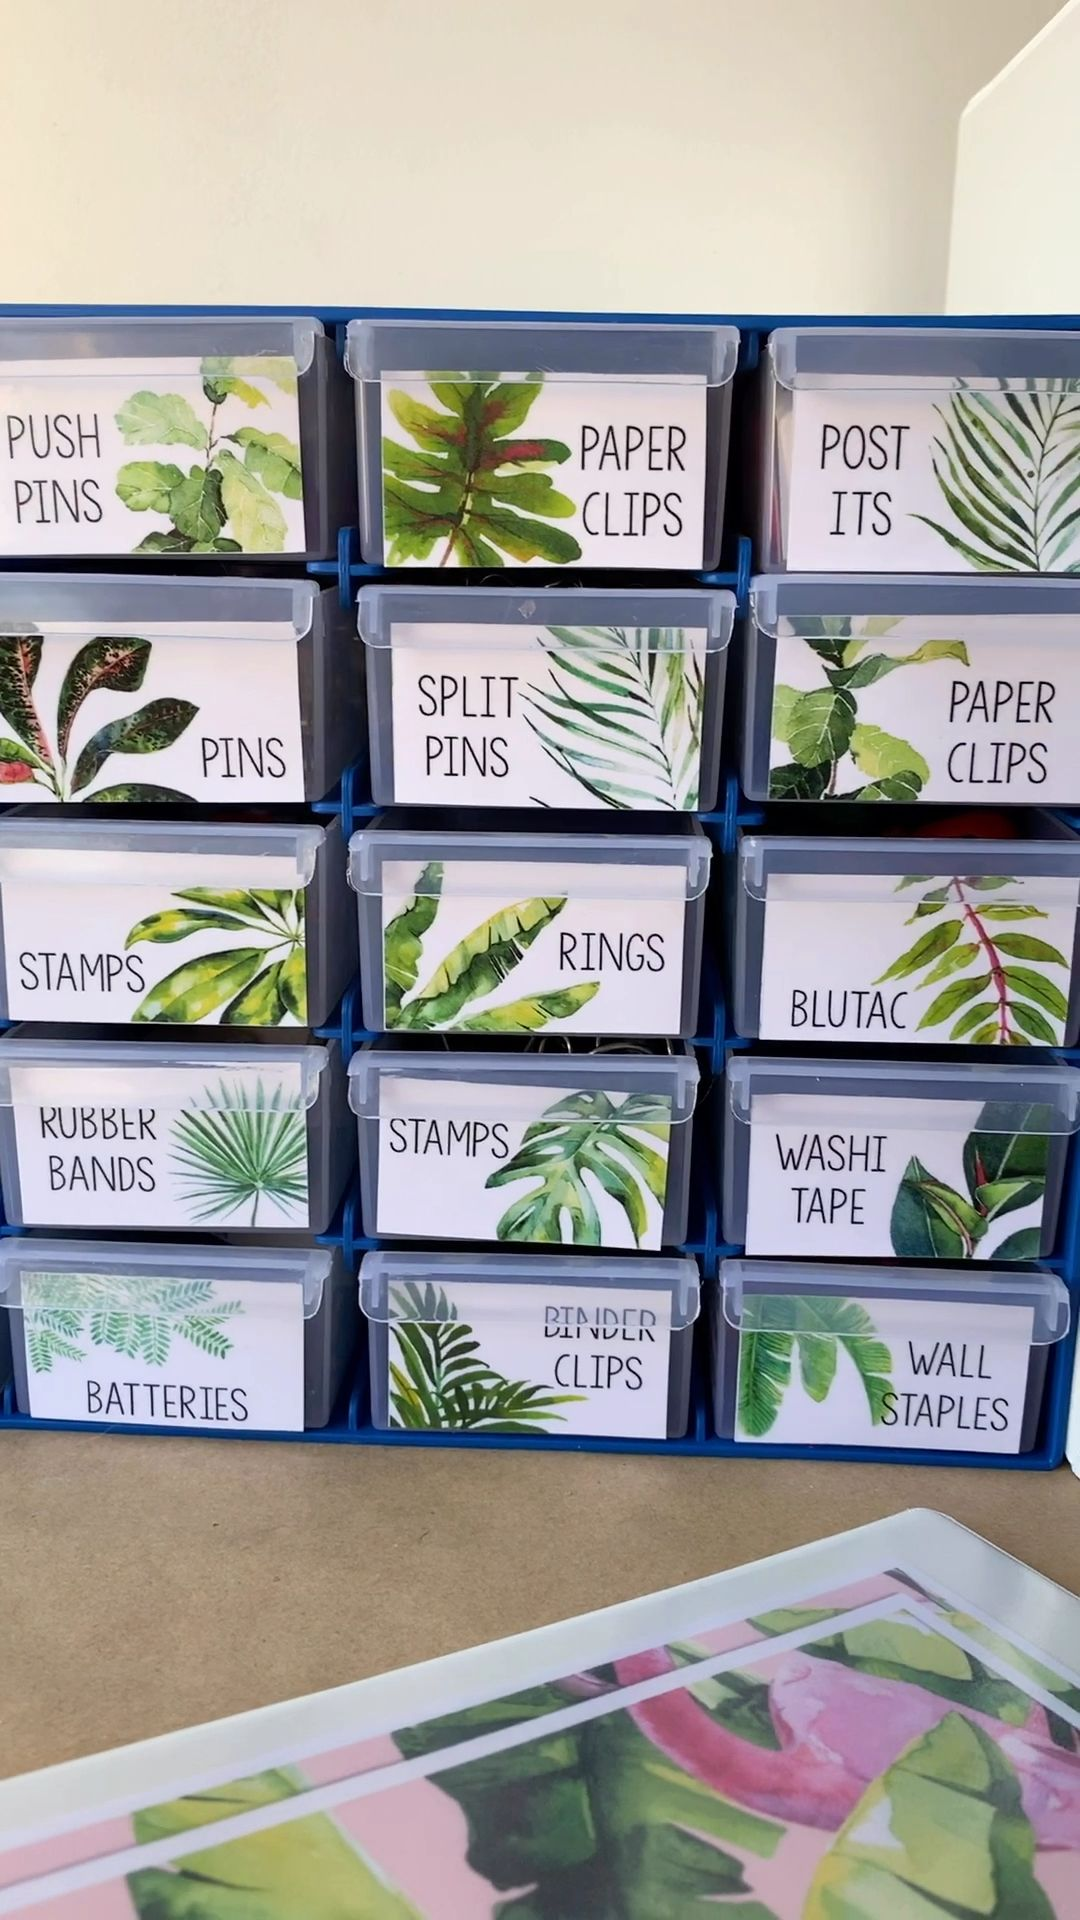 These easy to edit TROPICAL Teacher Toolbox Labels will keep your classroom organized this back to school! Made to match our TROPICAL Classroom Decor, choose from pages of different designs to organize all your office supplies and keep your desk drawers neat and tidy! #teachertoolbox #tropicalclassroom #tropicalteachertoolbox #tropicalclassroomdecor